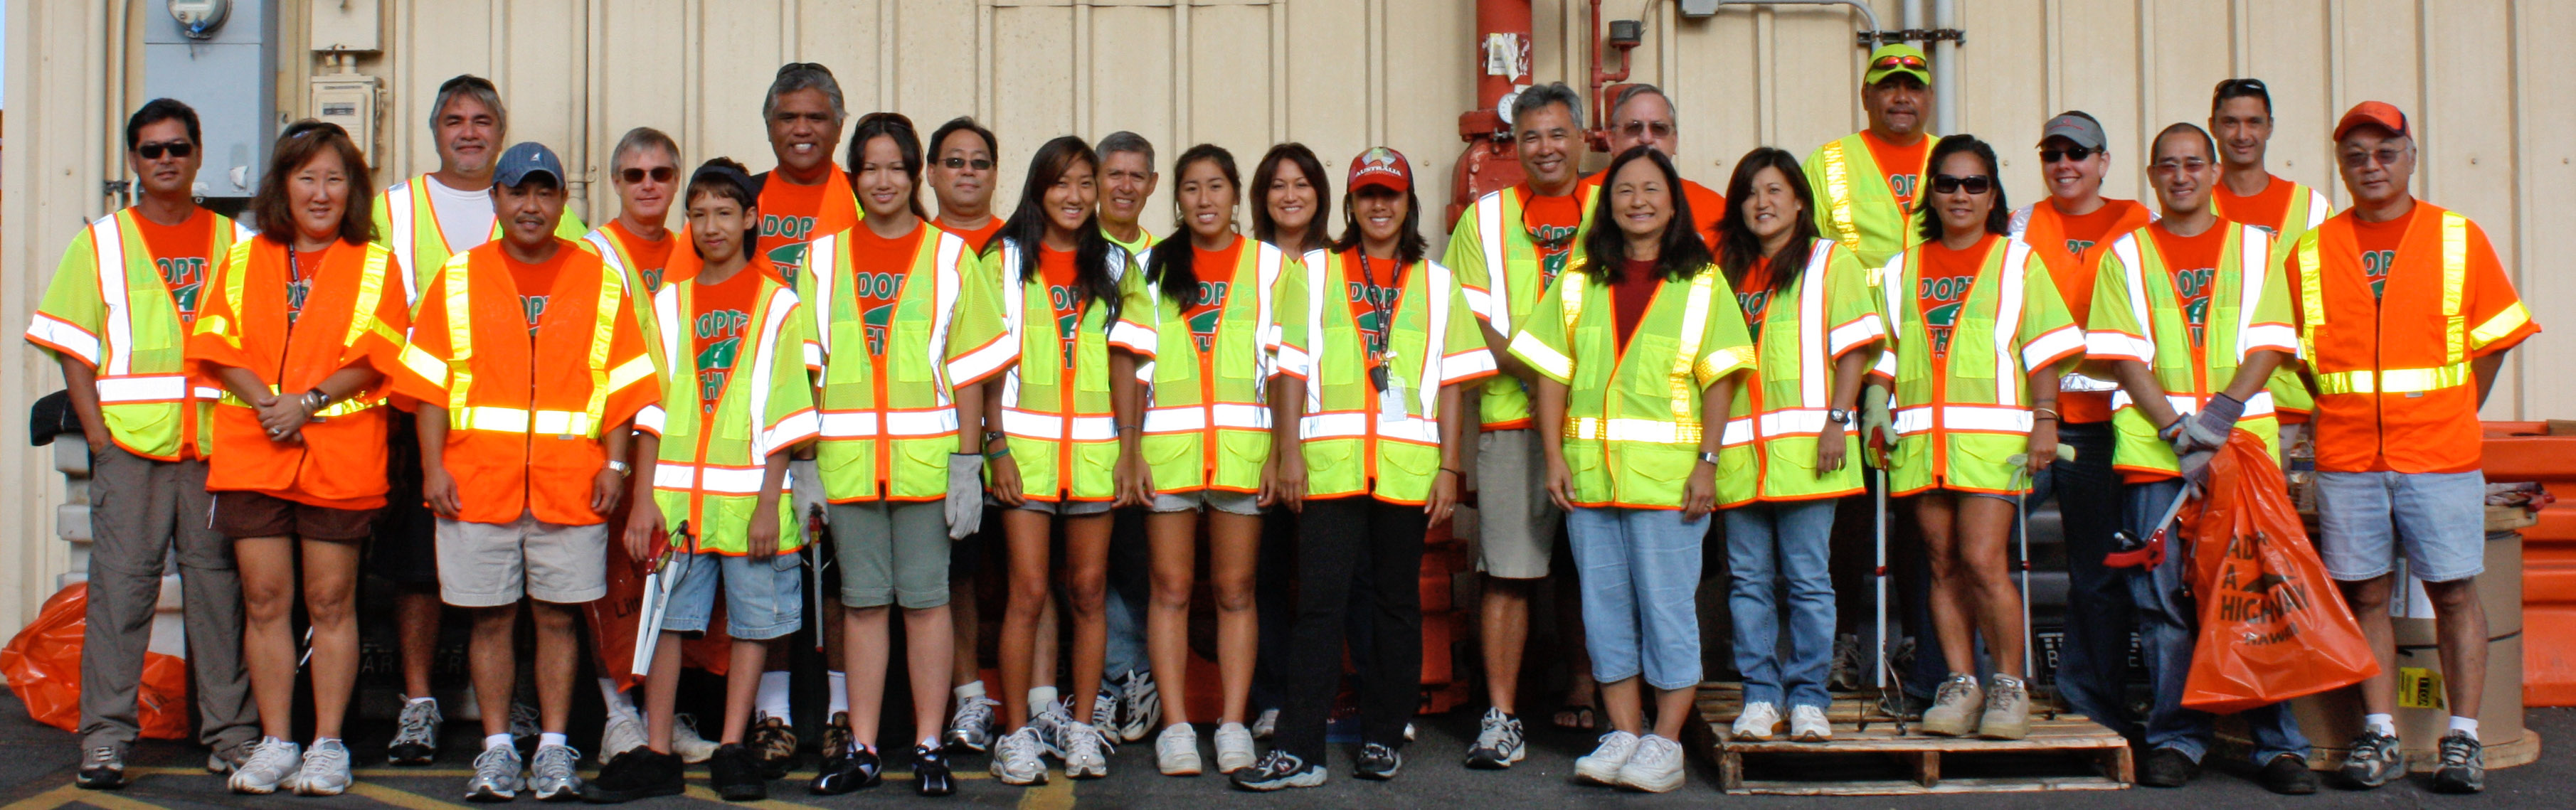 As part of the Adopt-A-Highway program, Hawaii Electric Light Company (HELCO) employees cleaned a stretch of Kanoelehua Avenue on August 14, 2010.  Over 20 volunteers spent two hours on Saturday morning picking up litter along busy Kanoelehua Avenue, from Puainako Street to Kamehameha Avenue. The team effort was coordinated by HELCO's Engineering Department.